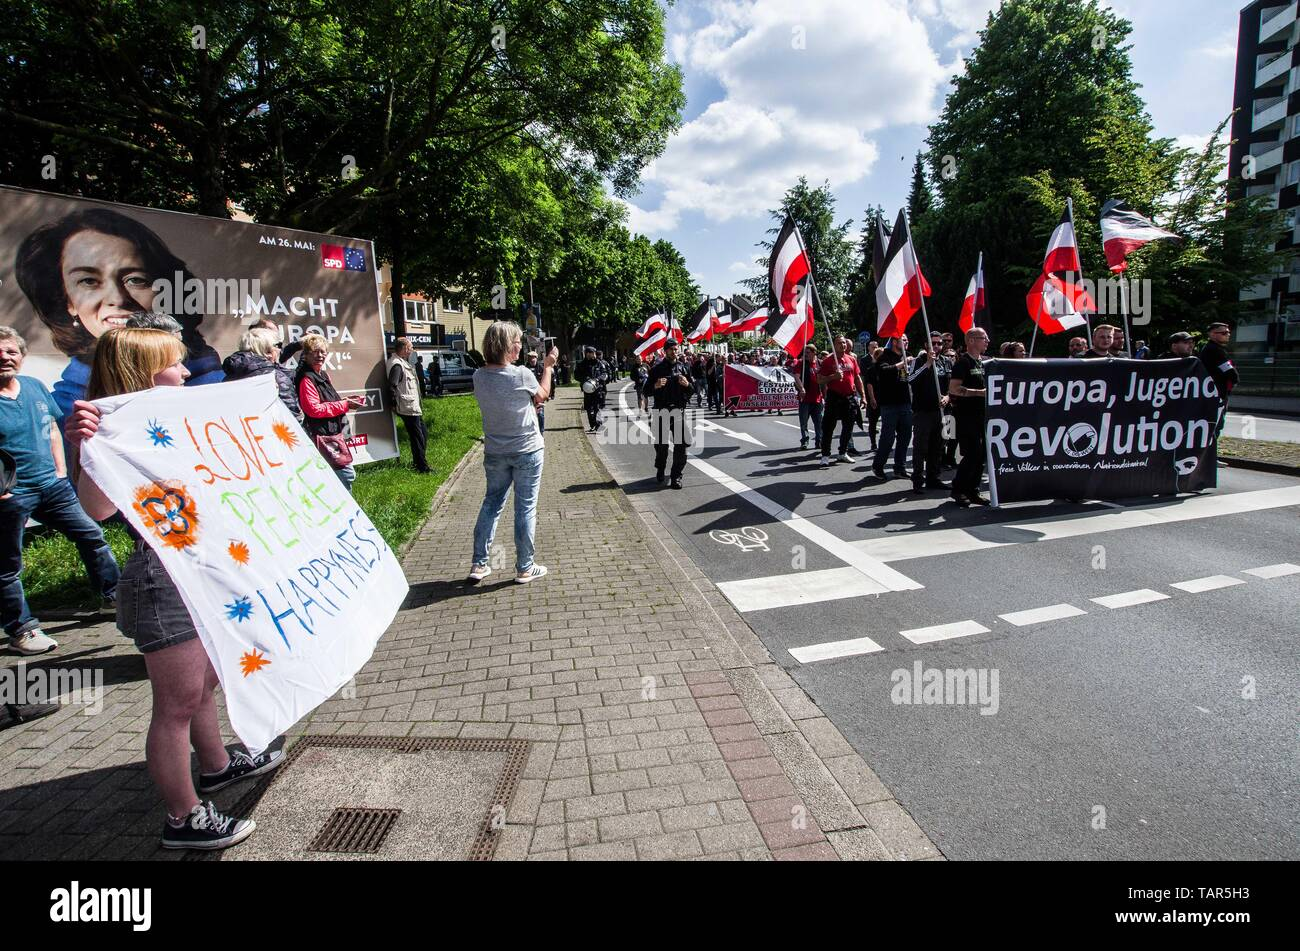 Dortmund, Nordrhein Westfalen, Germany. 25th May, 2019. A demonstrator against racism to the left of the approaching neonazi parade in Dortmund, Germany. Prior to the European Elections, the neonazi party Die Rechte (The Right) organized a rally in the German city of Dortmund to promote their candidate, the incarcerated Holocaust denier Ursula Haverbeck. The demonstration and march were organized by prominent local political figure and neonazi activist Michael Brueck (Michael Brück) who enlisted the help of not only German neonazis, but also assistance from Russian, Bulgarian, Hungarian, an Stock Photo